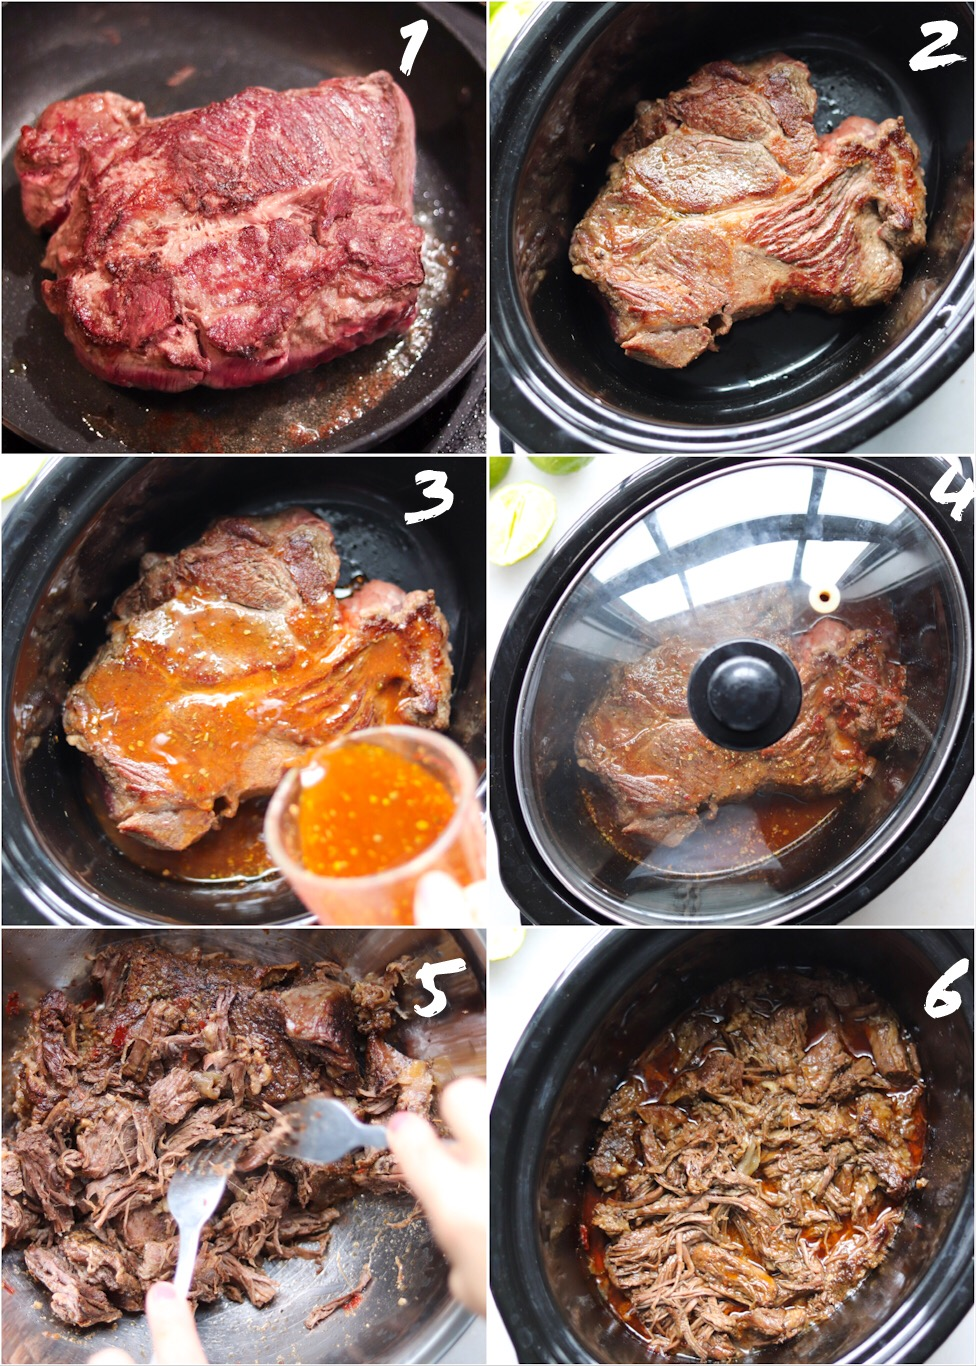 Step by Step collage of photos showing how to cook Barbacoa beef in the slow cooker: First, brown the beef, then transfer to the slow cooker. Pour the chipotle, broth, and herb mixture over the beef, cover, and cook. Shred the beef and return to the slow cooker to keep warm.